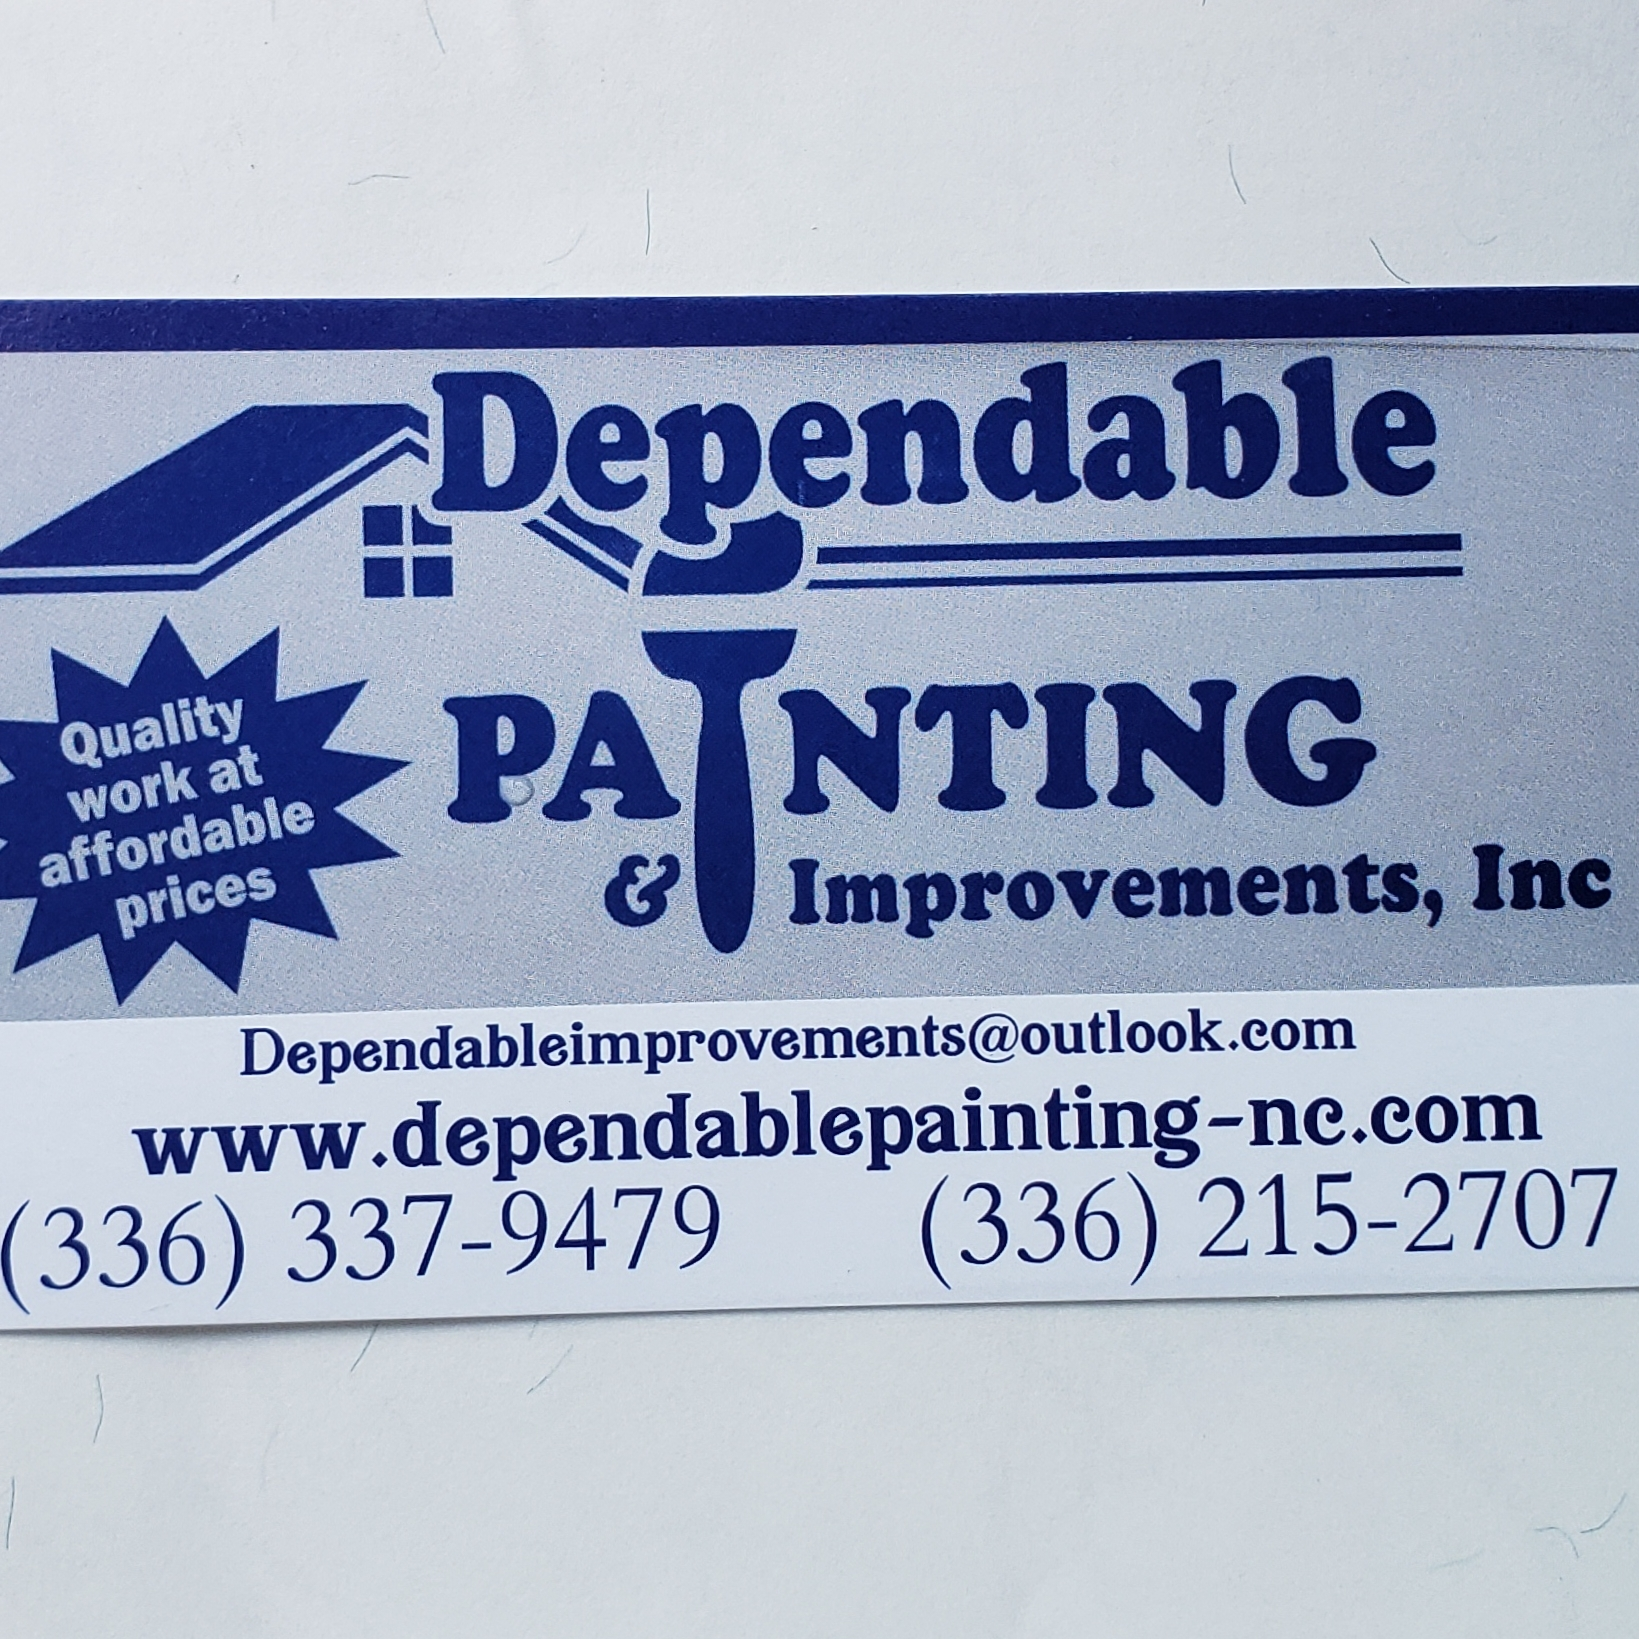 Dependable Painting and Improvements INC.